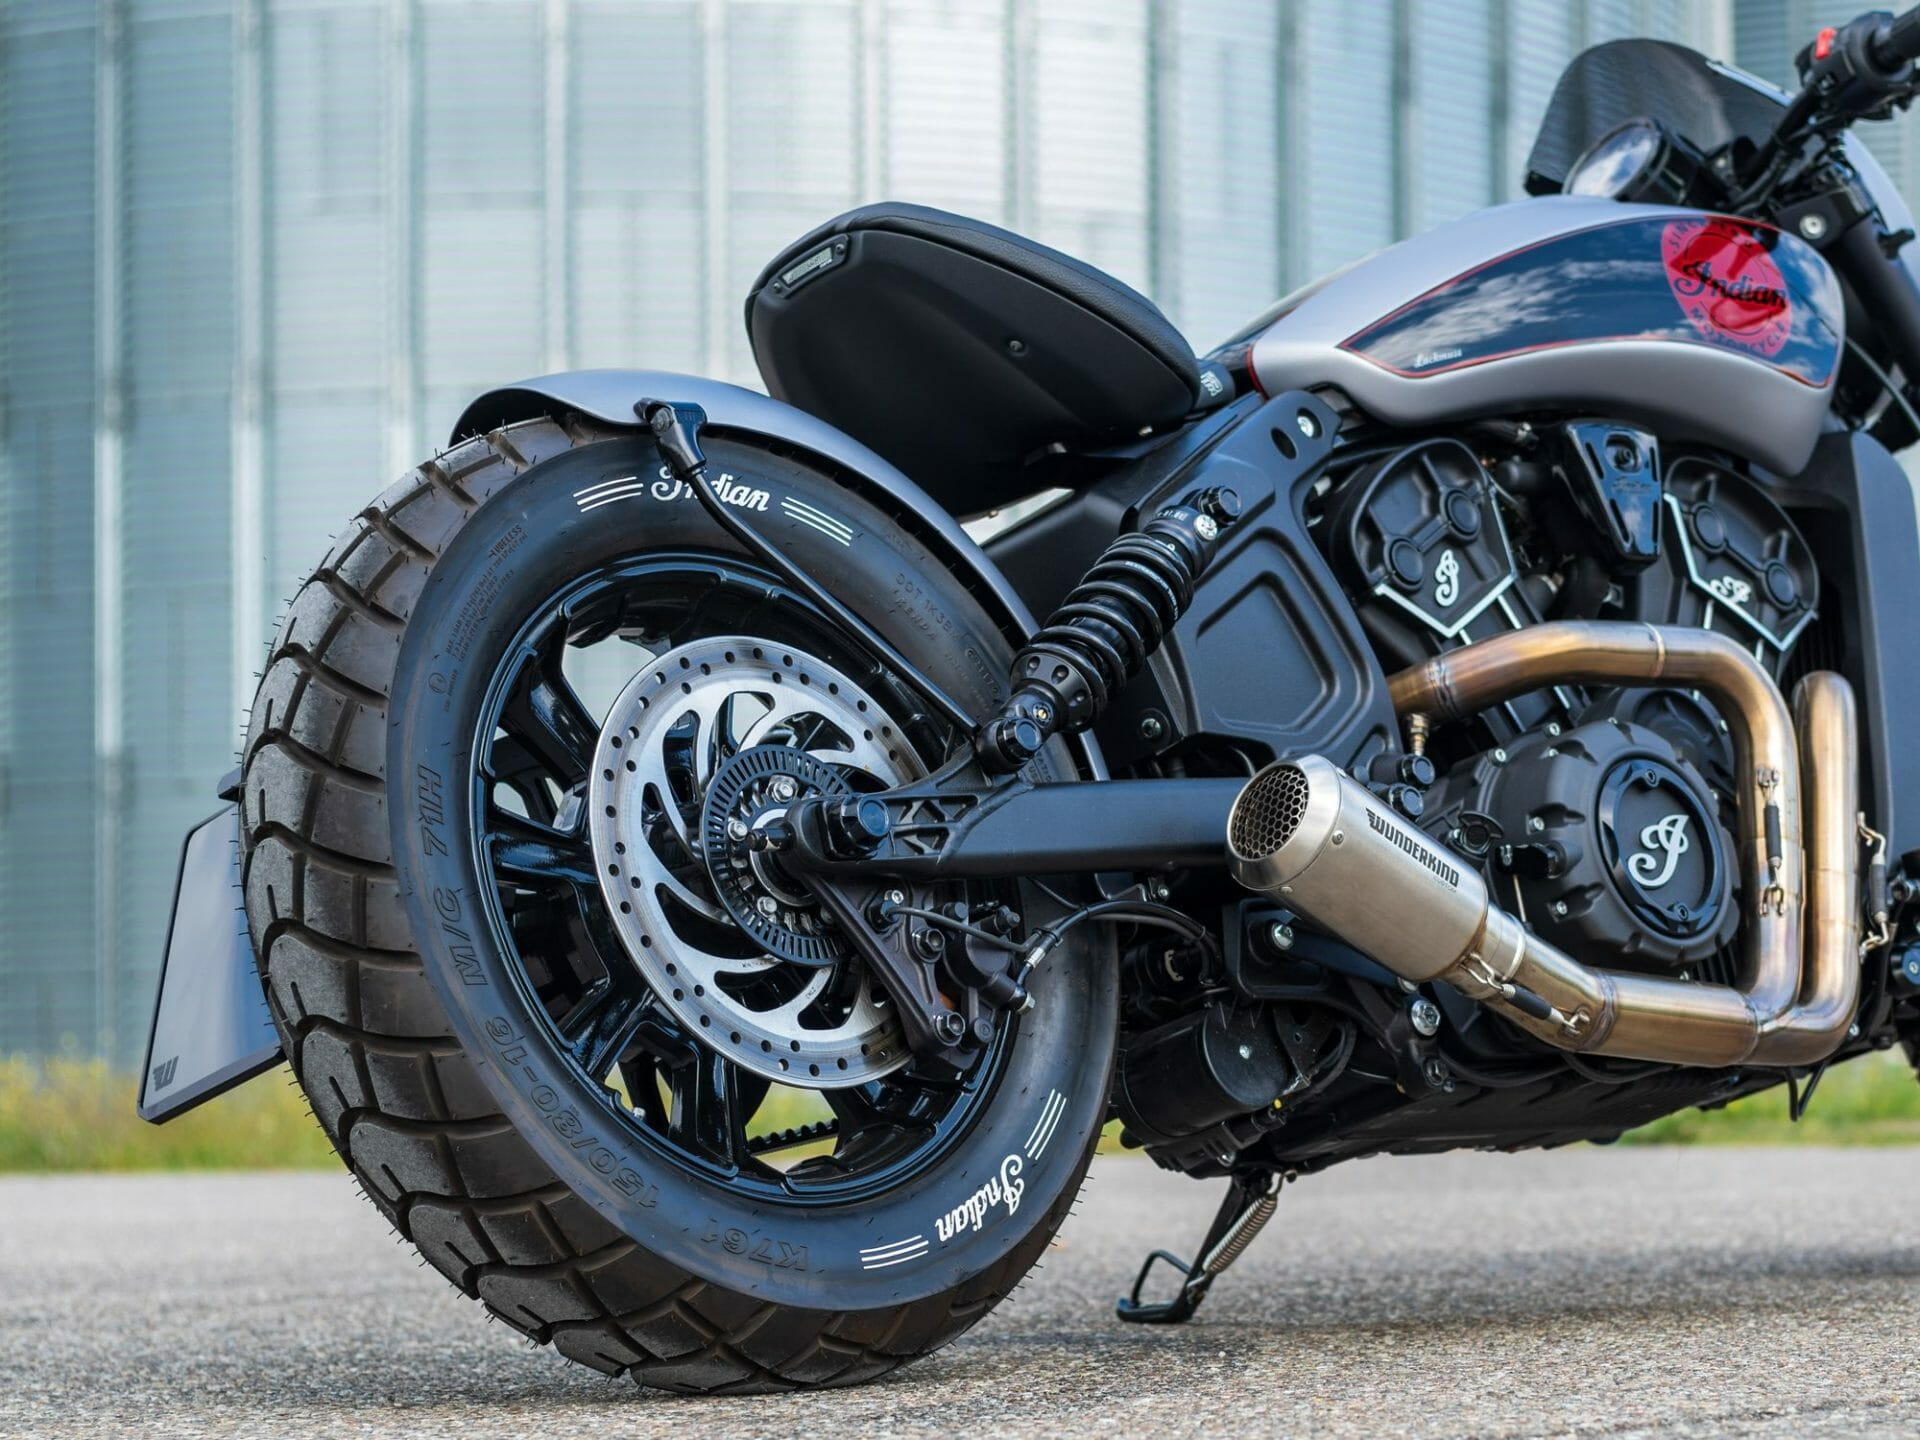 Wunderkind Newchurch Three Bobber Rear Fender Conversion Kit Motorcycles News Motorcycle Magazine